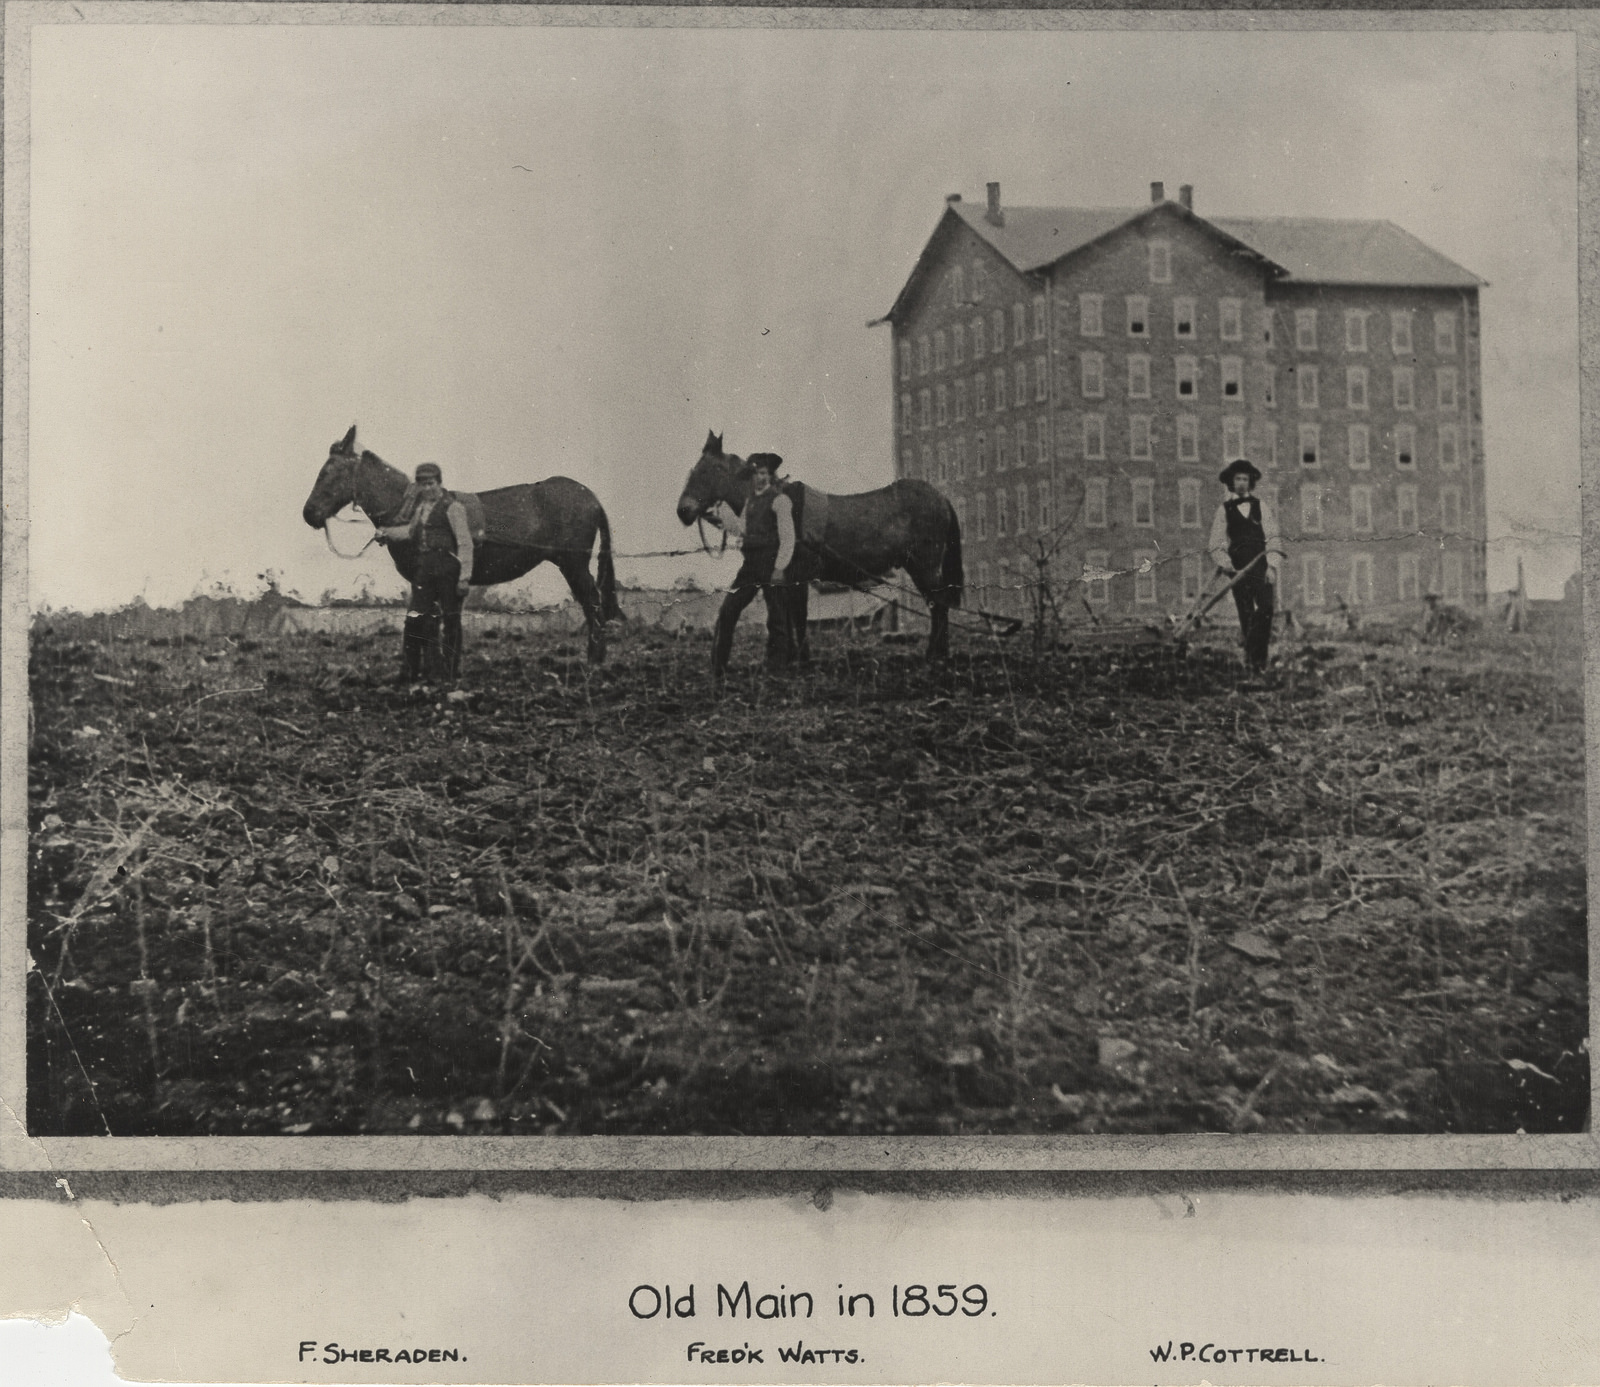 Old Main building in the right background with two mules in front of a plow, being led by two people, and one other person in back of the plow